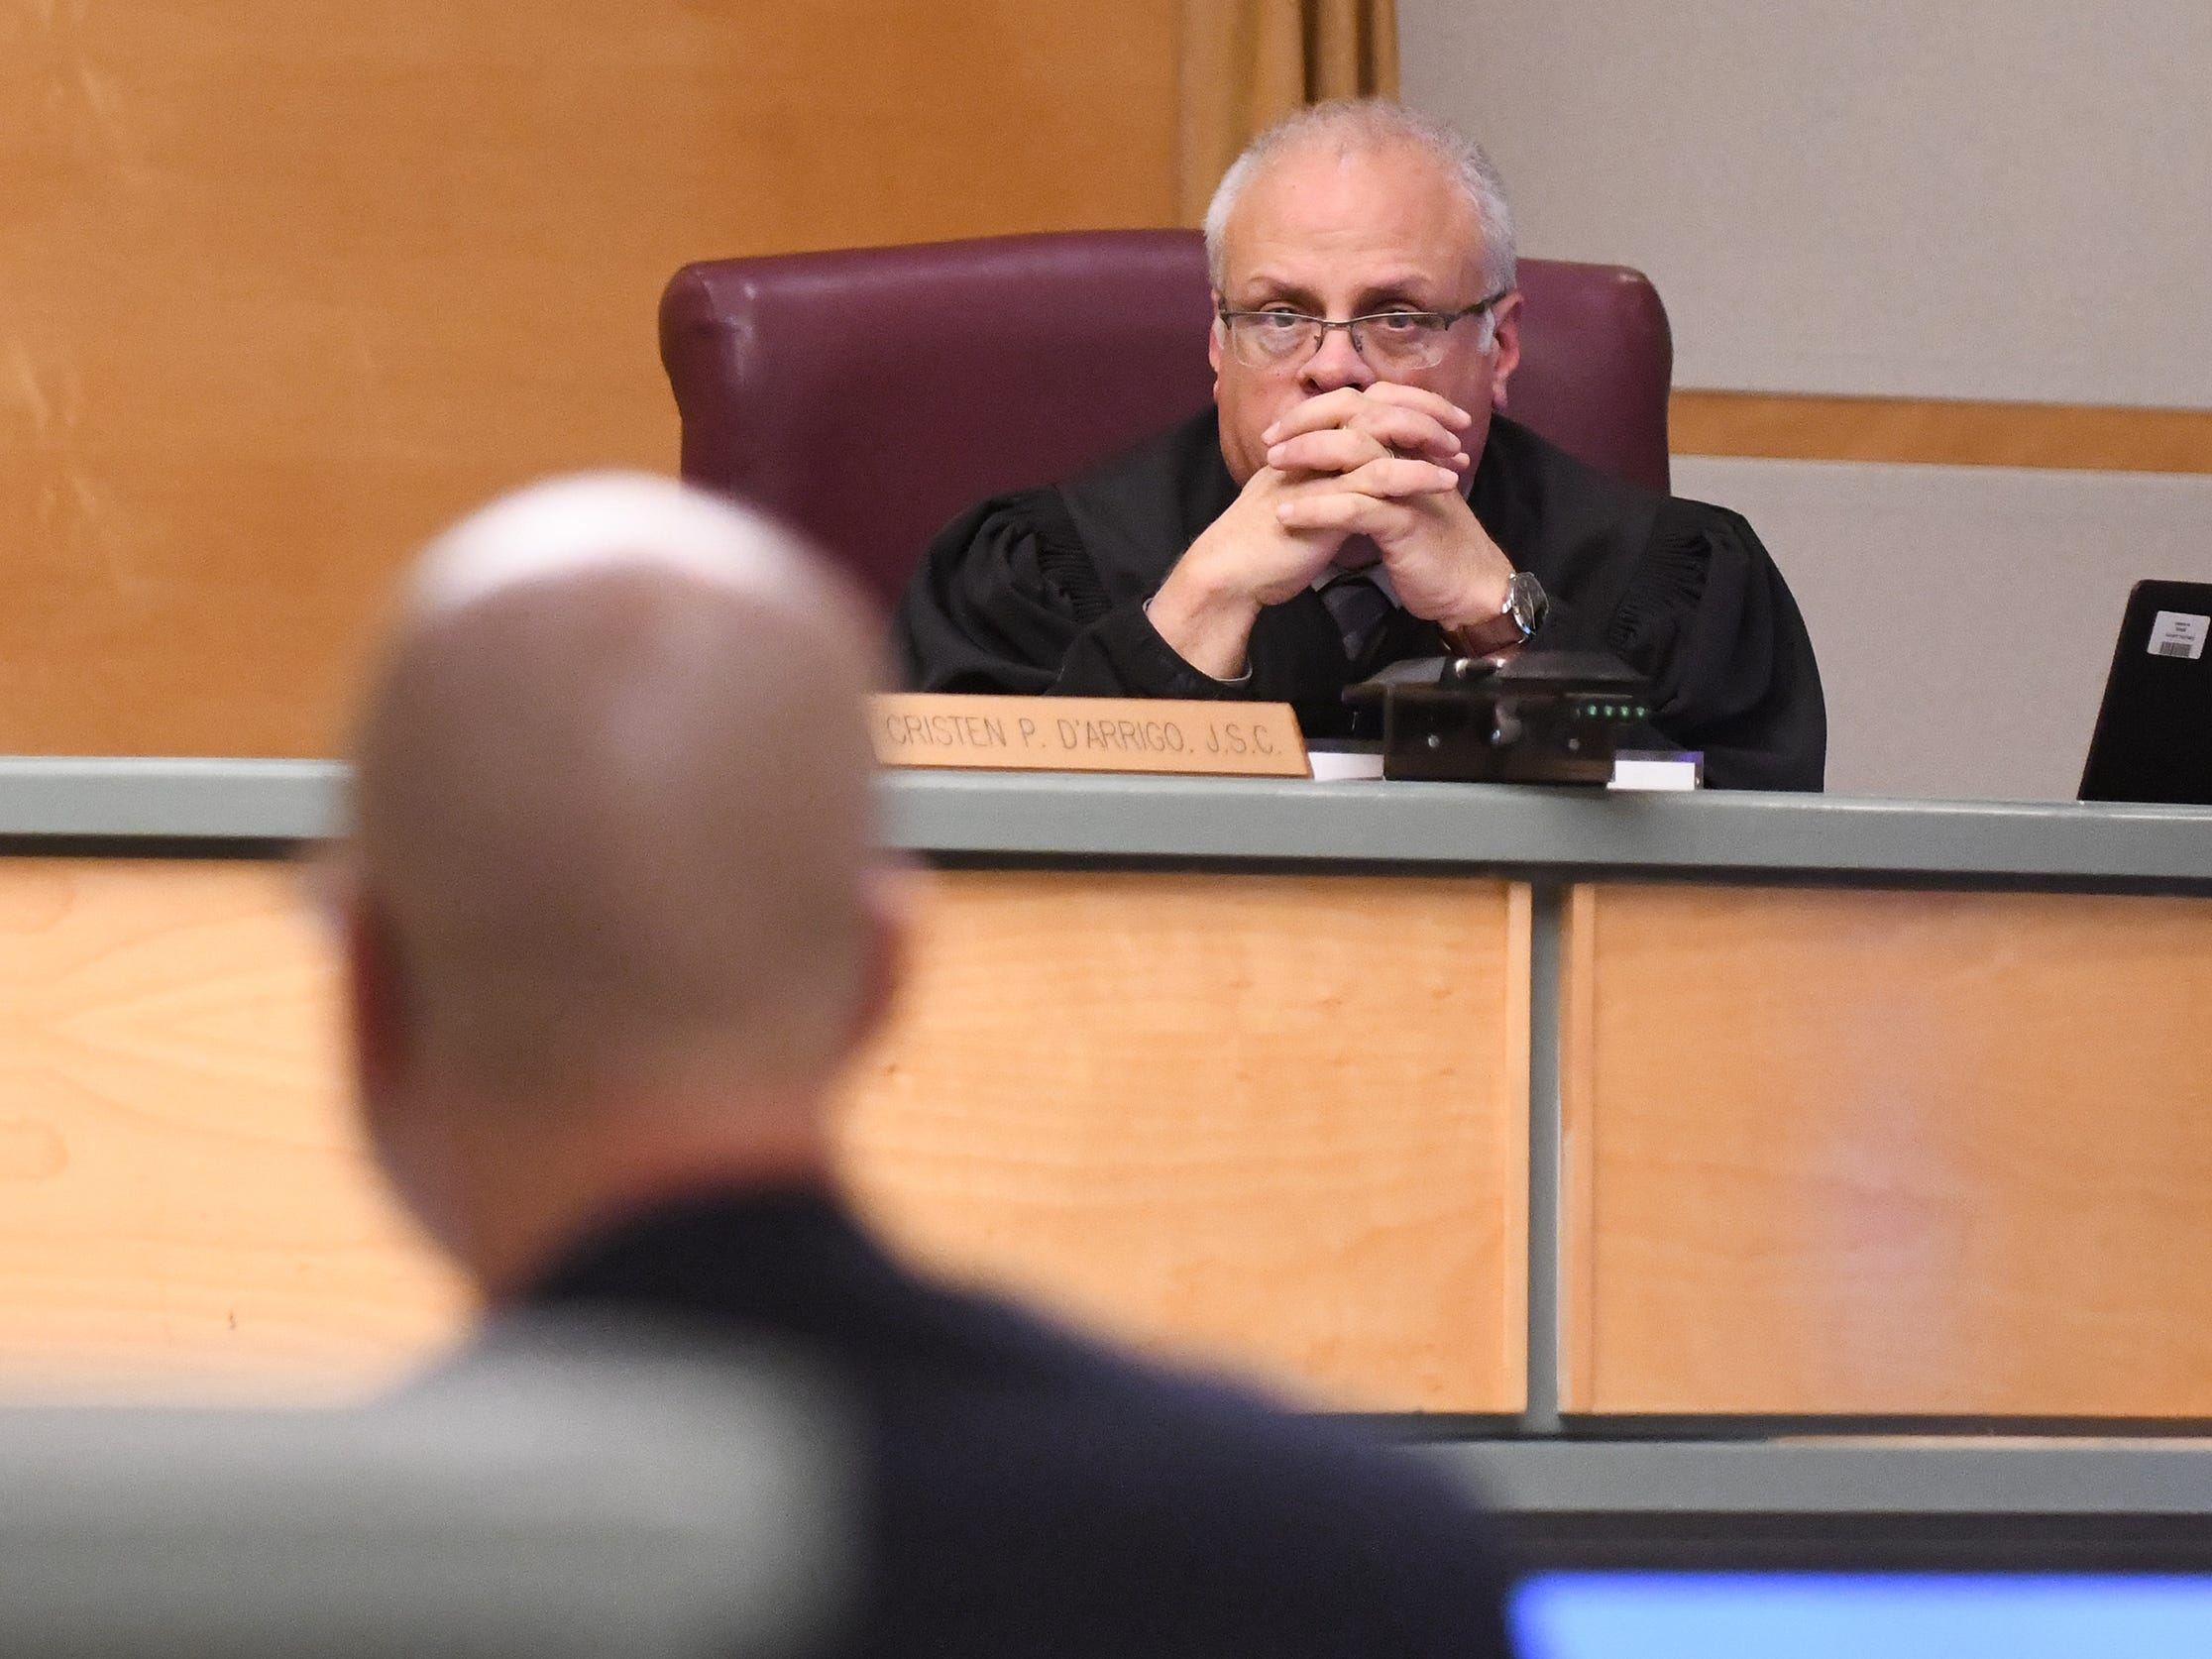 Judge Cristen D'Arrigo listens to opening statements in the murder trial of Jeremiah E. Monell in Cumberland County Superior Court on Thursday, January 3, 2019.